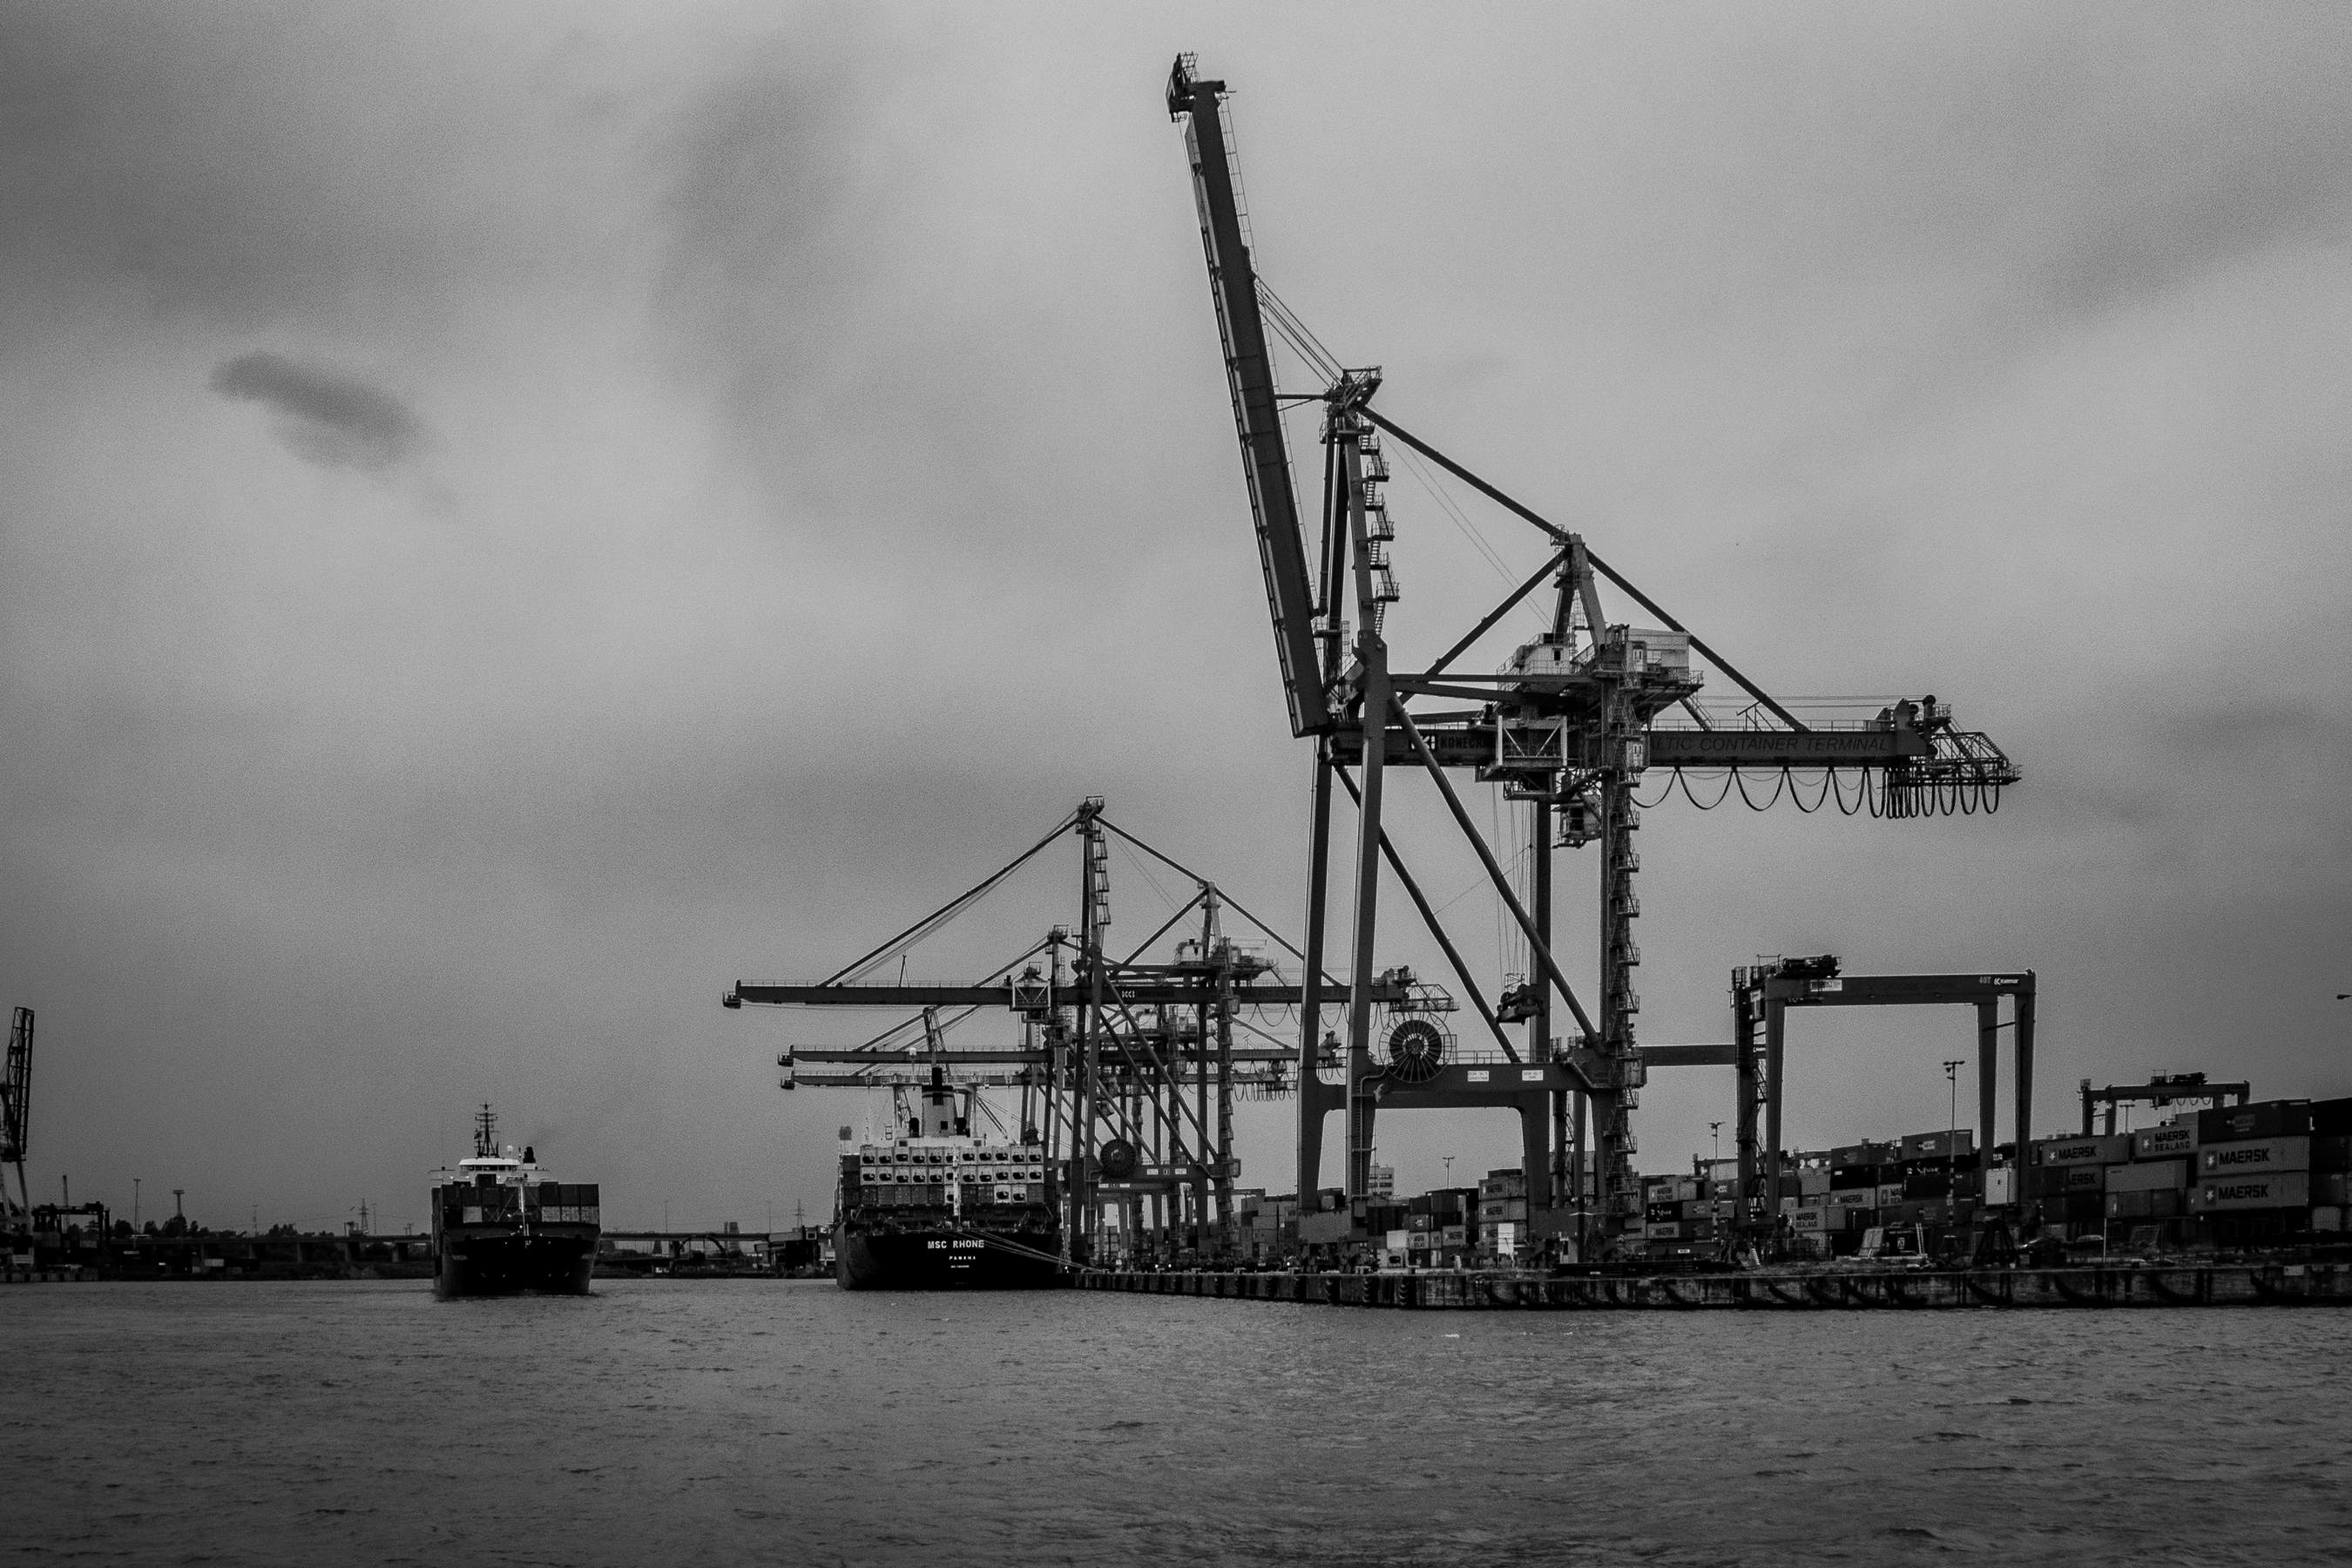 Rainy afternoon in the Gdynia port.